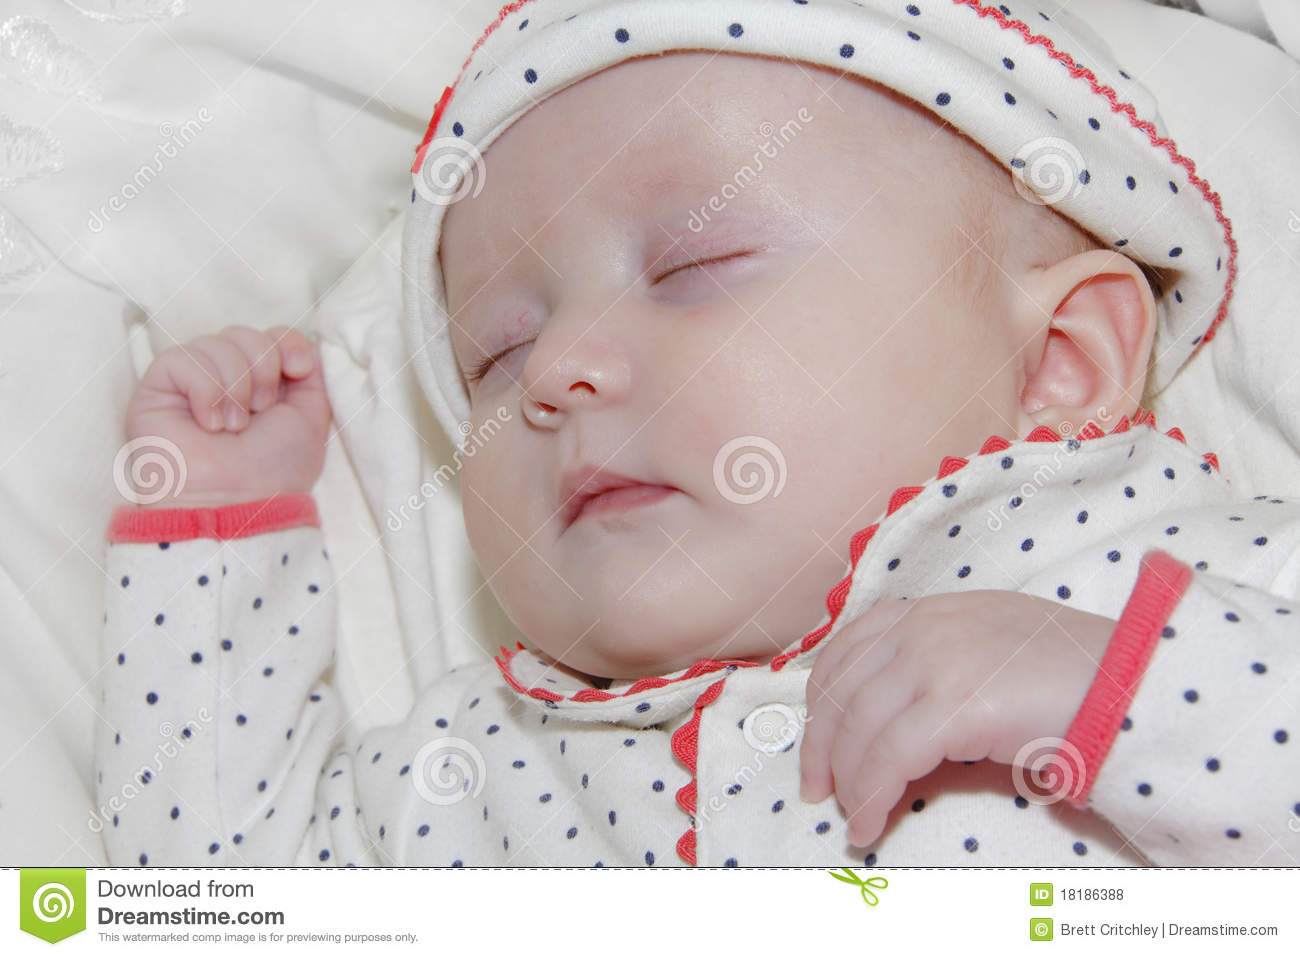 newborn baby girl sleeping stock photo. image of portrait - 18186388